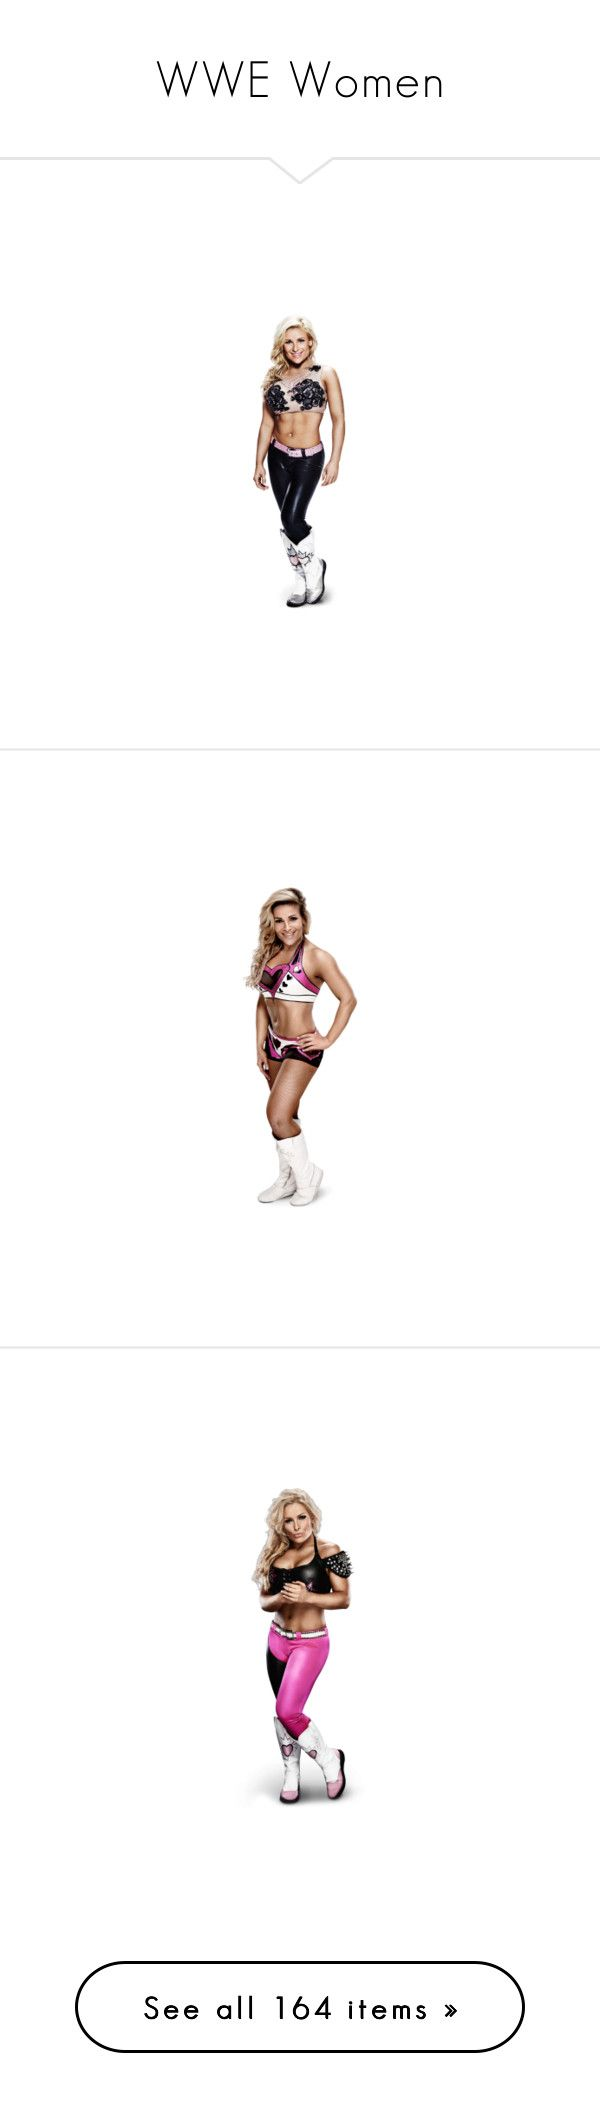 """""""WWE Women"""" by bazingax ❤ liked on Polyvore featuring wwe, divas, people, natalya, wwe figures, superstars, wwe diva, kelly kelly, aj lee and accessories"""